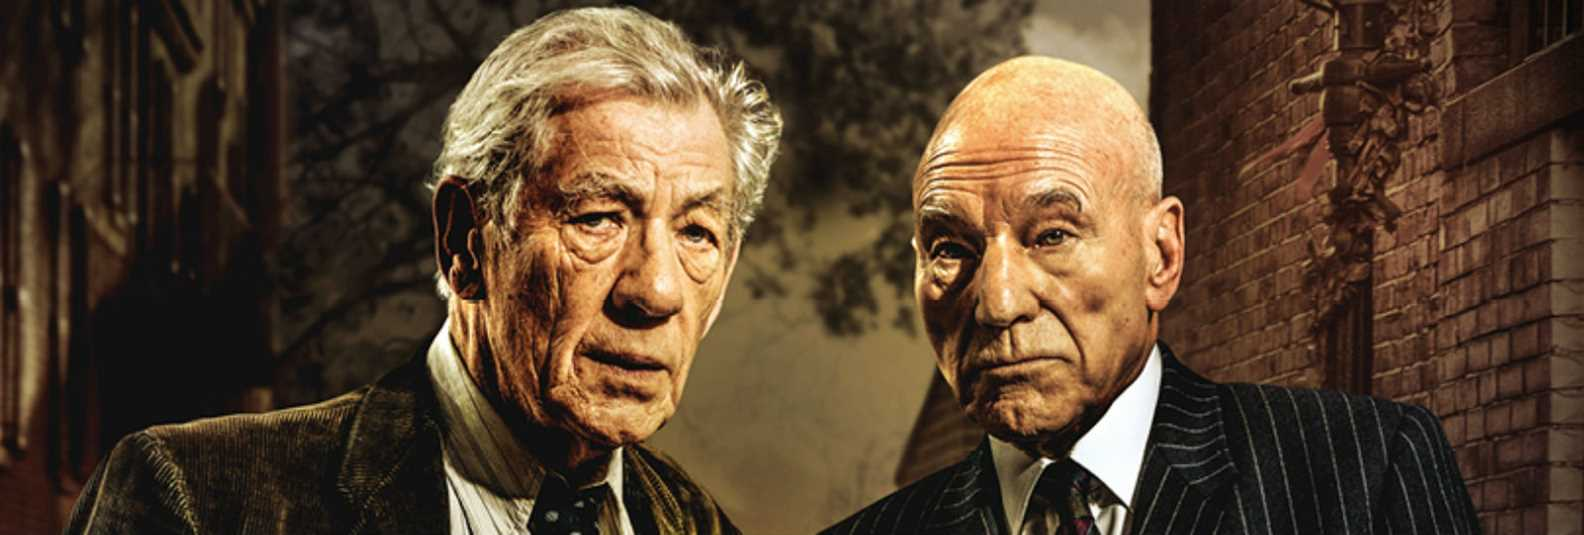 No Man's Land get up close with two British acting legends